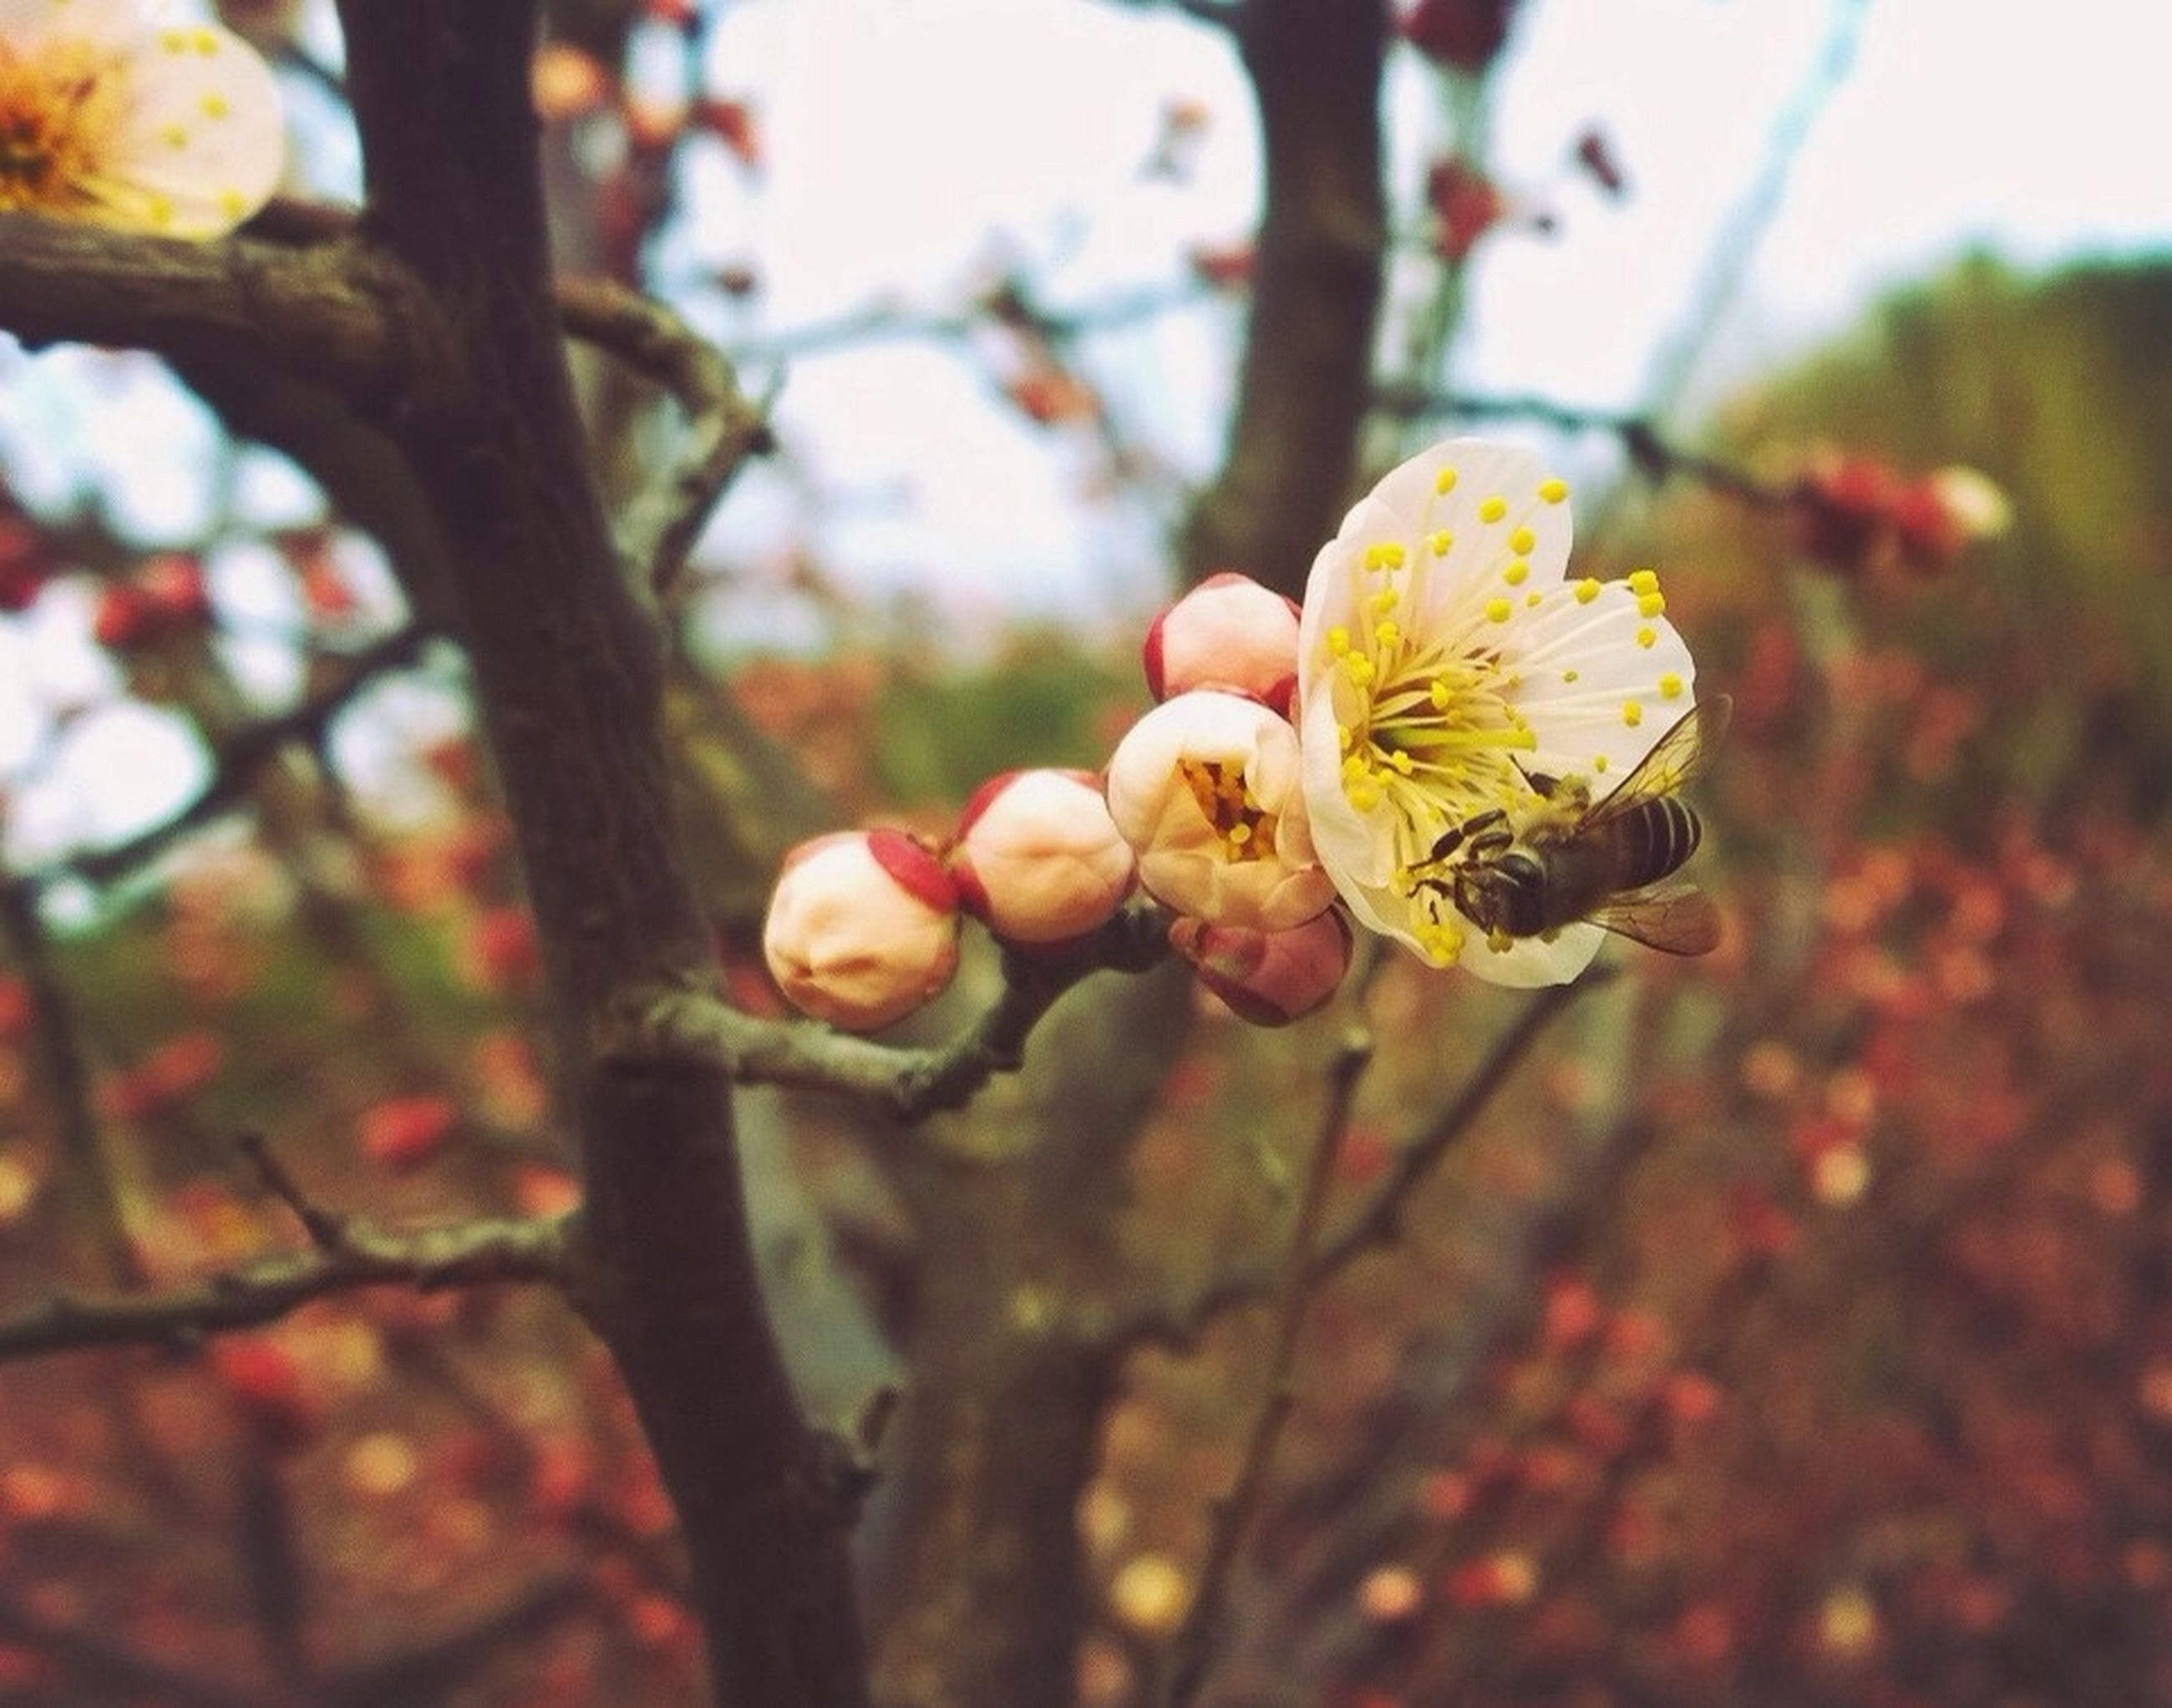 flower, tree, branch, growth, freshness, focus on foreground, close-up, fragility, nature, beauty in nature, petal, blossom, selective focus, bud, flower head, outdoors, day, no people, springtime, twig